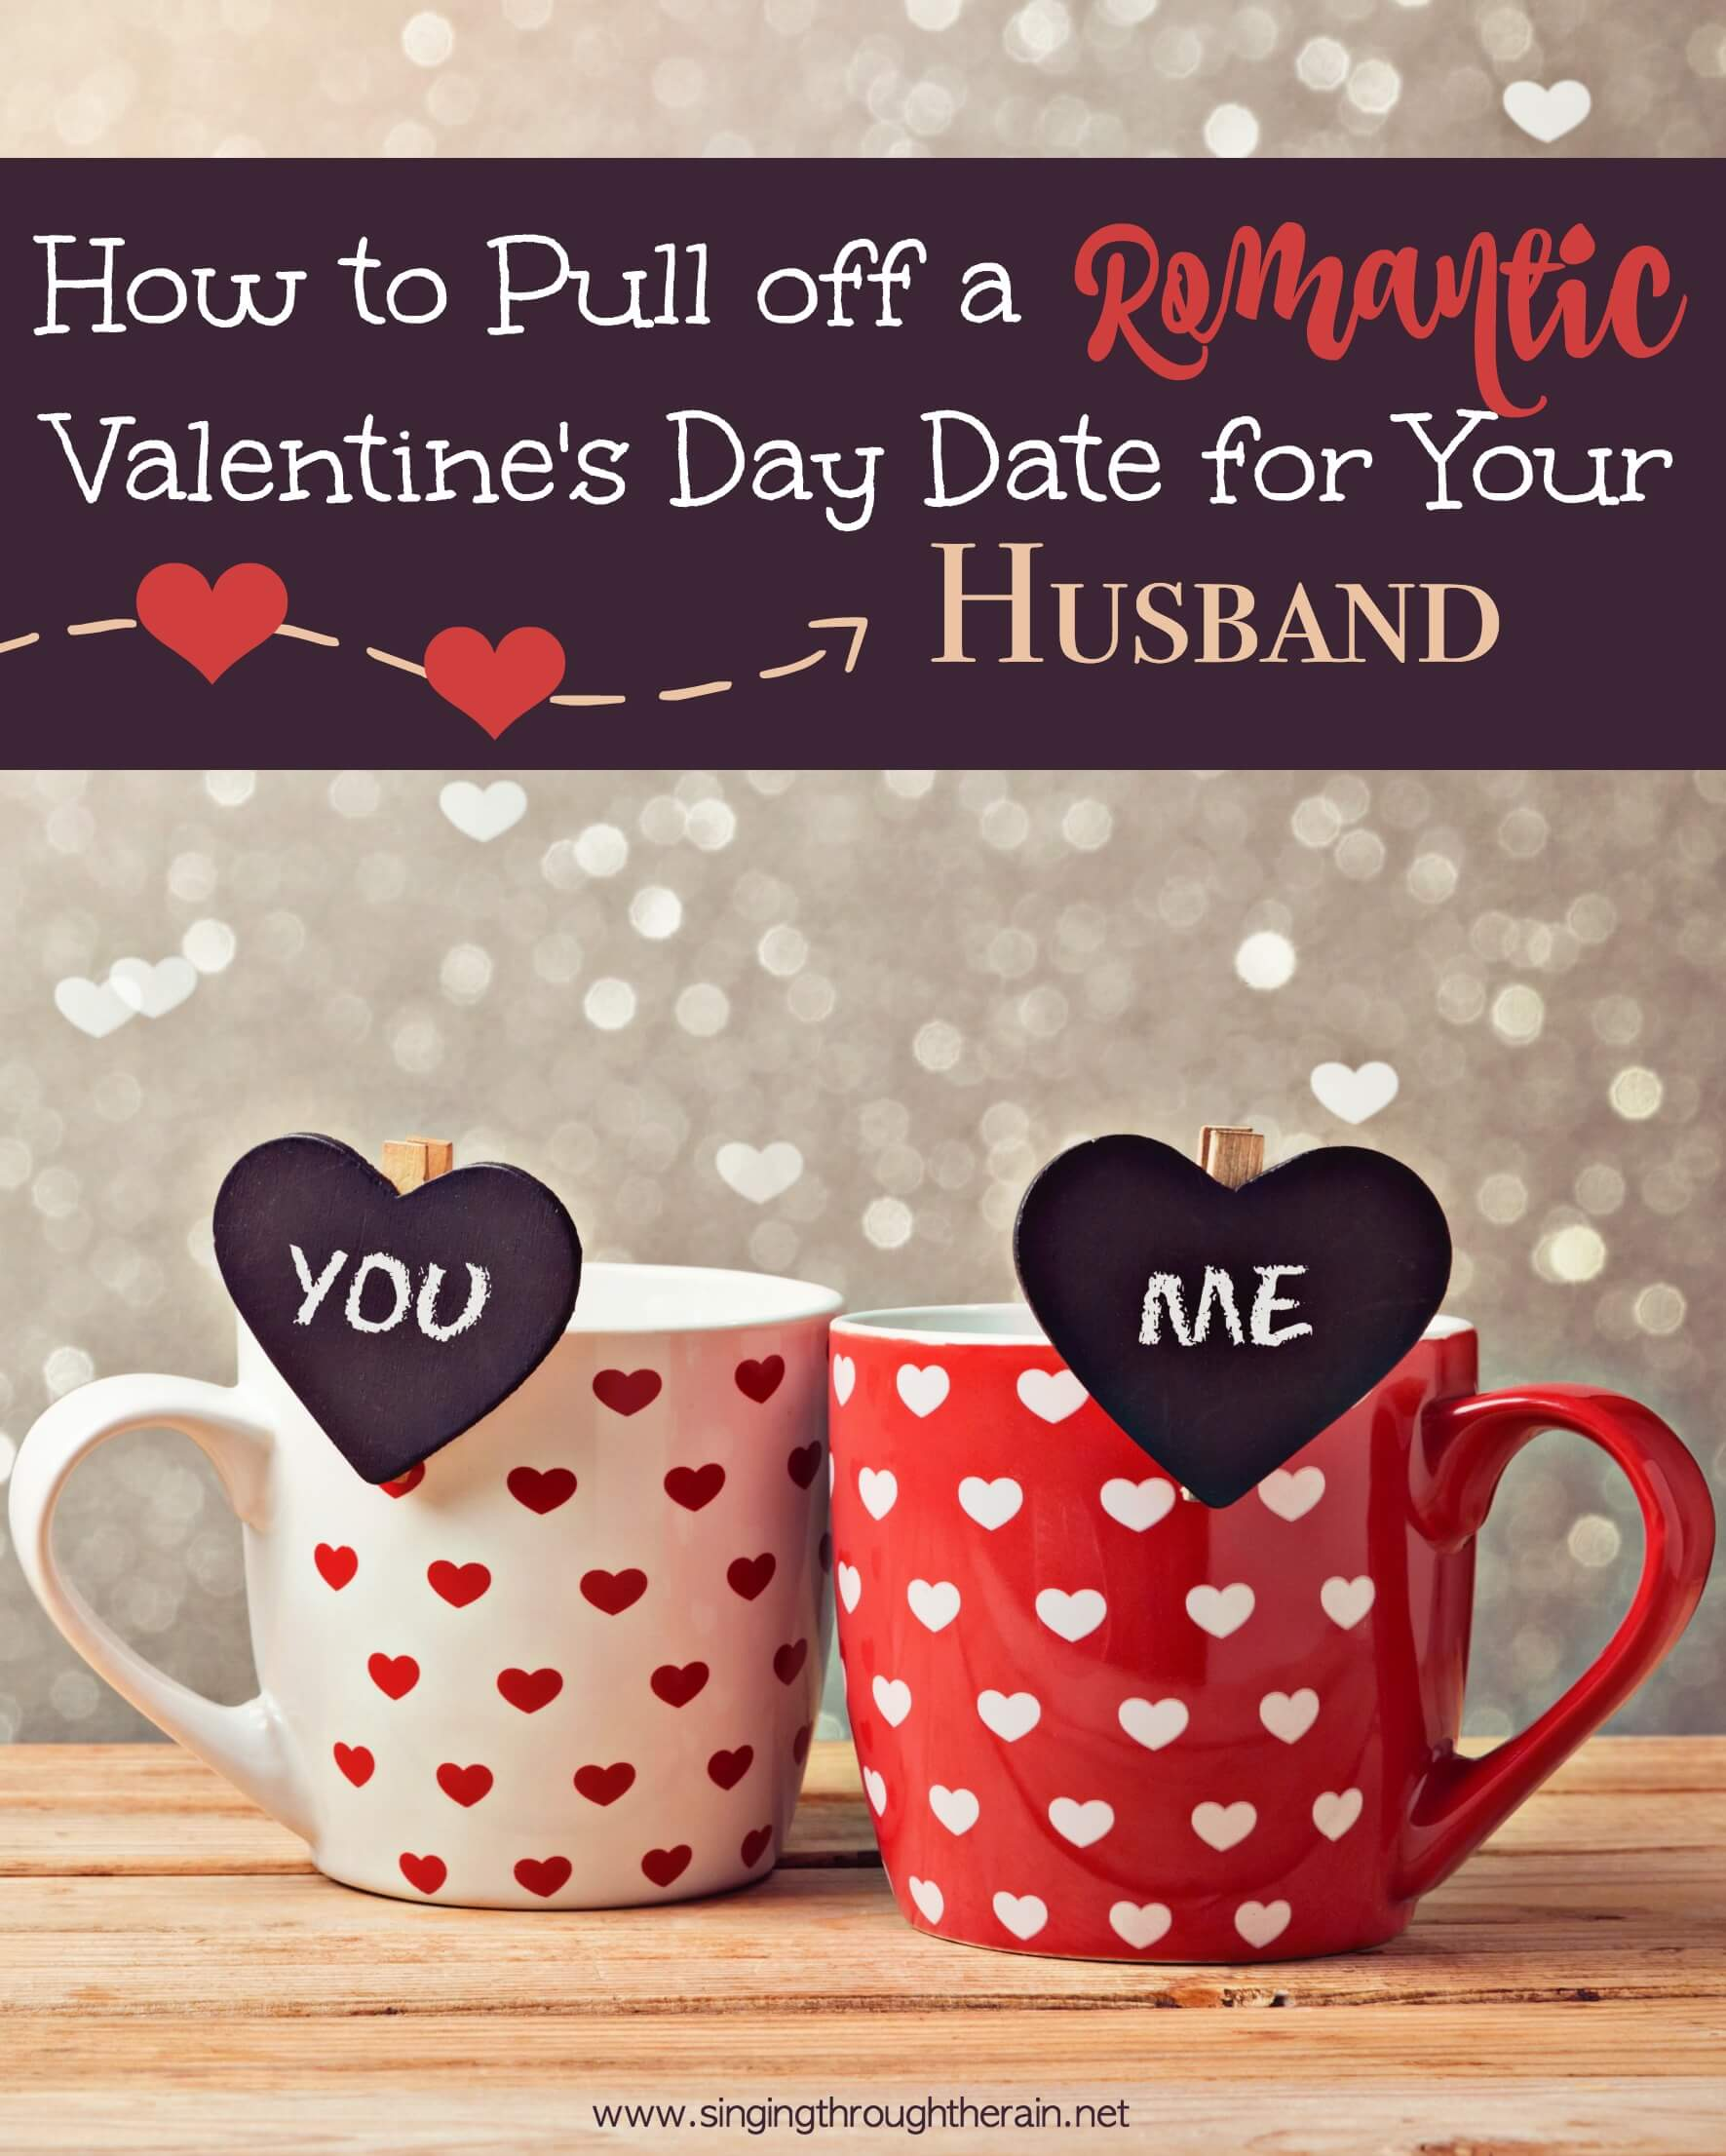 7 Suggestions For A Romantic Valentineu0027s Day Date